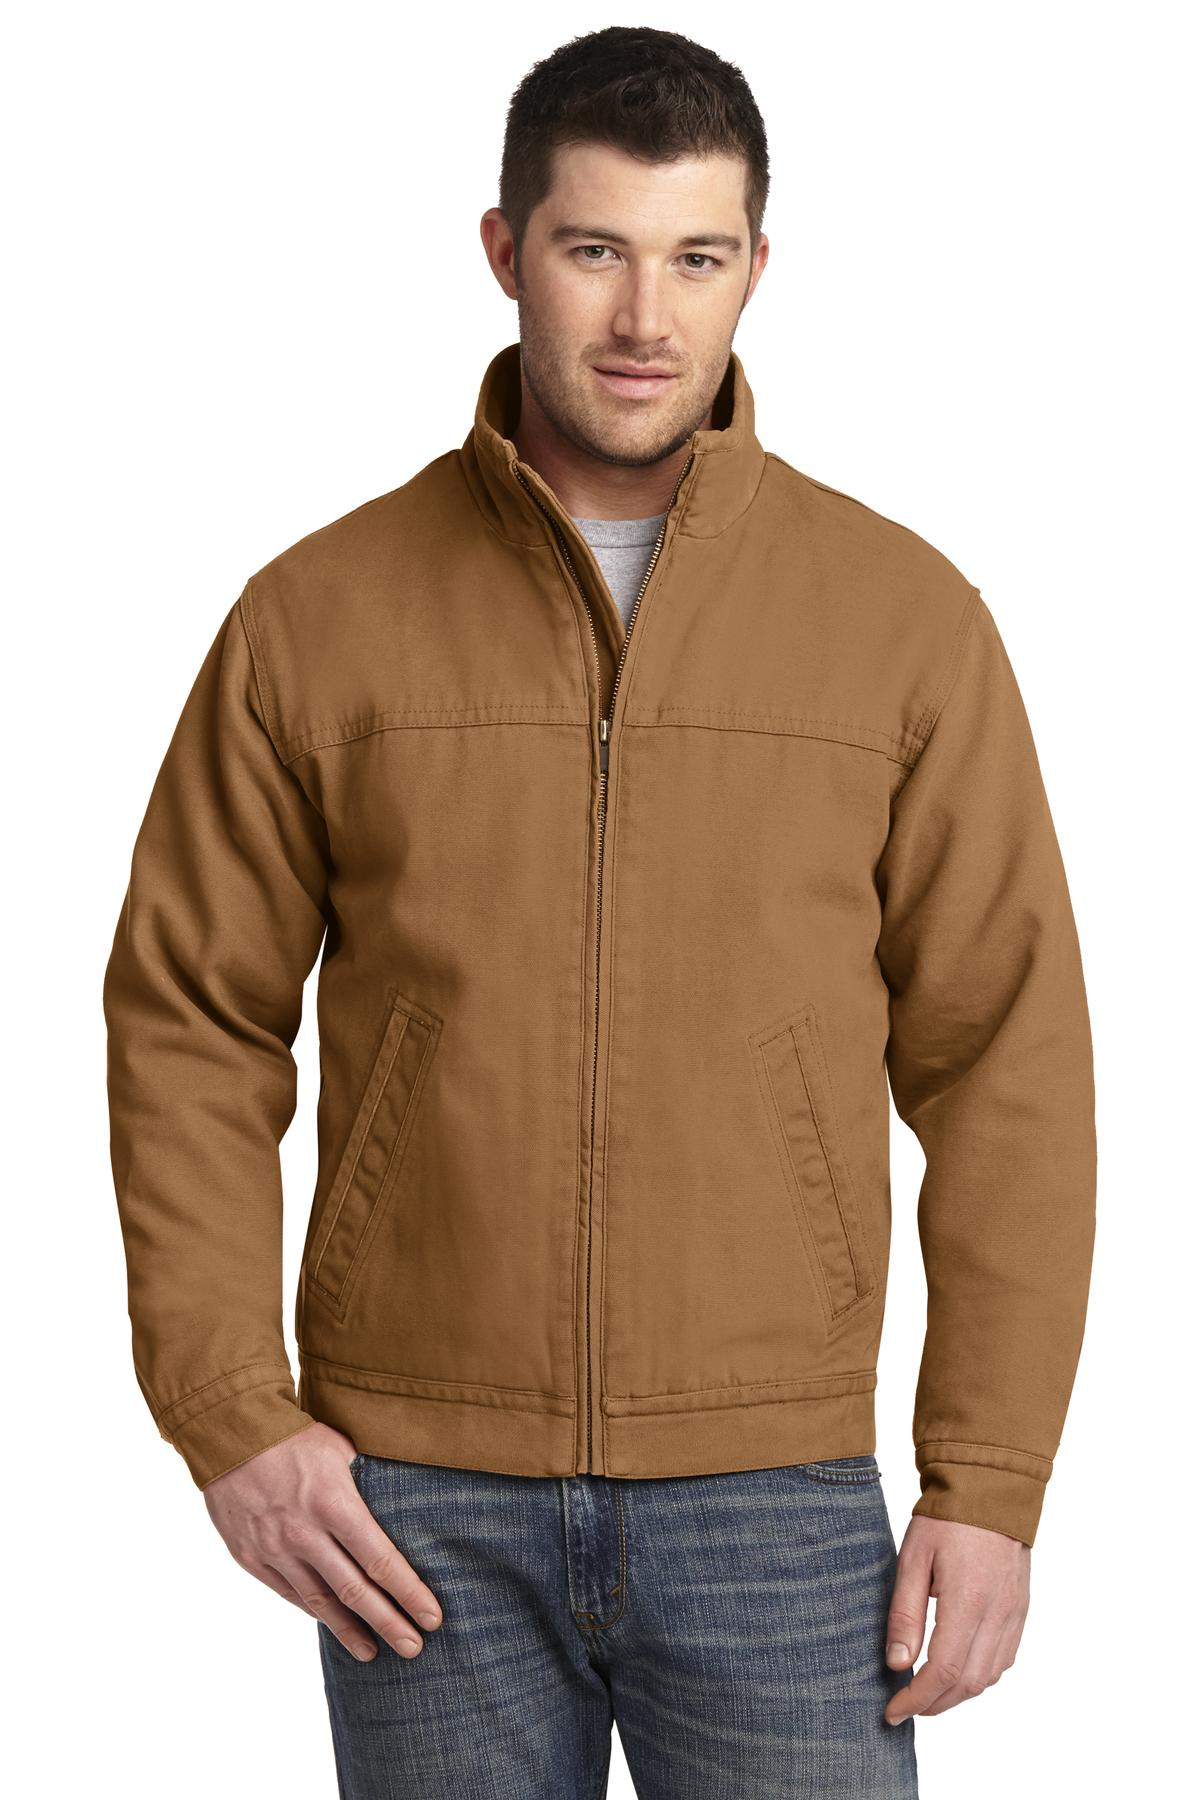 CornerStone ®  Washed Duck Cloth Flannel-Lined Work Jacket. CSJ40 - Duck Brown